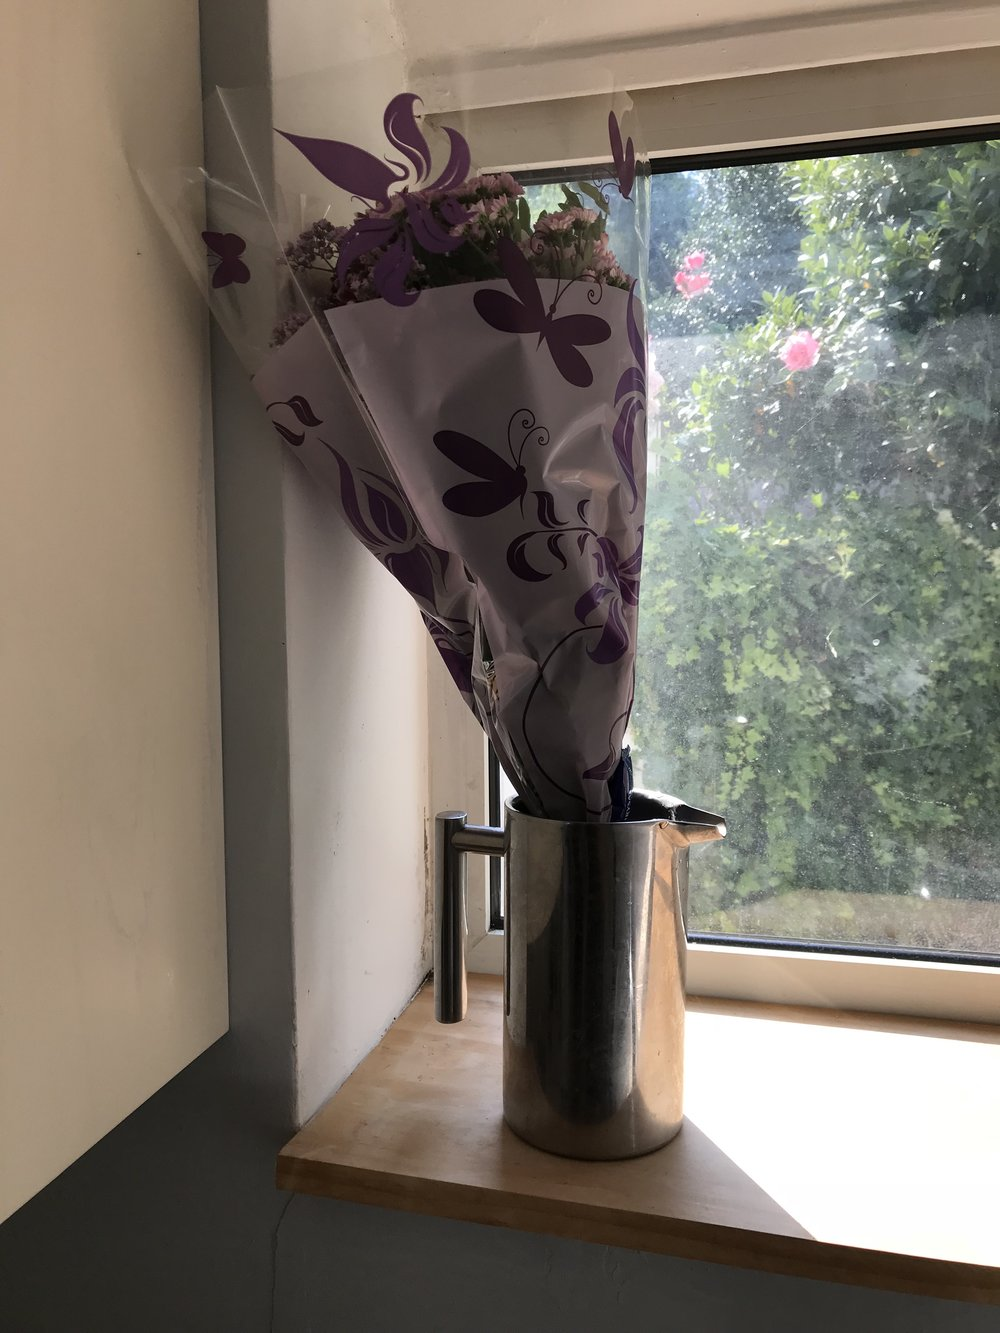 When you have no vase but f**king cool friends!